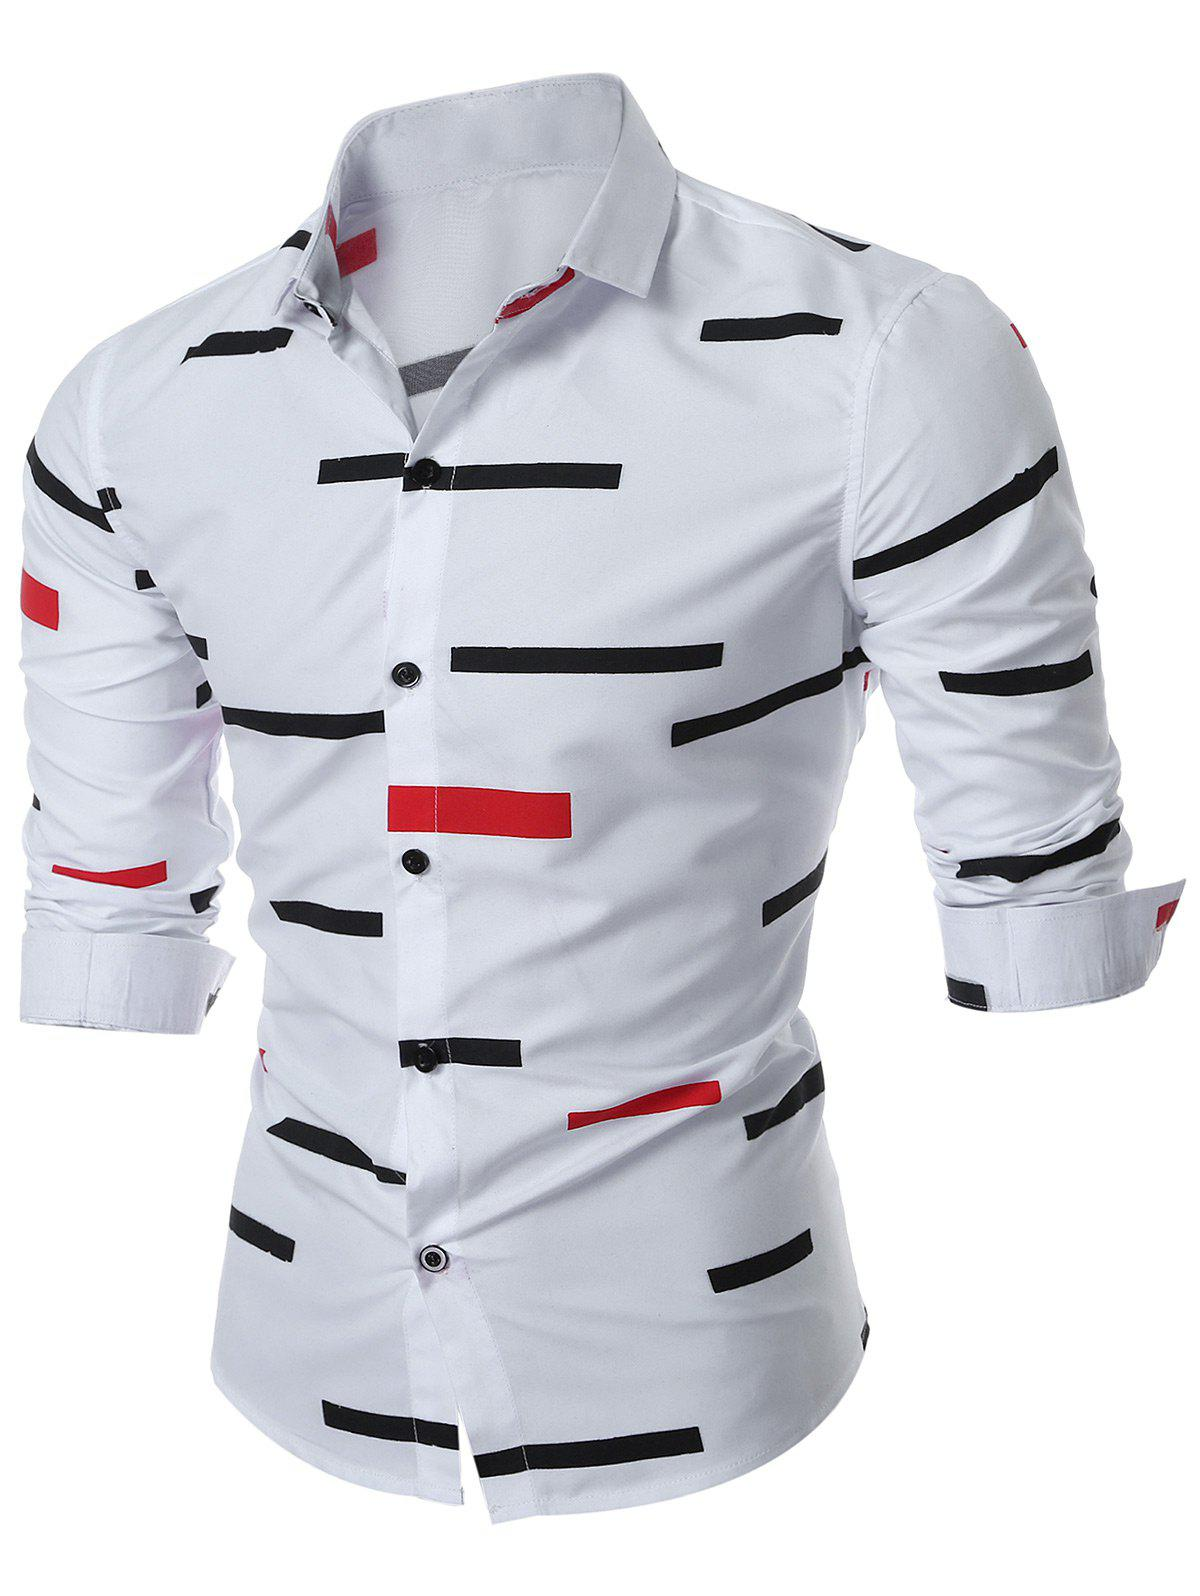 Slim Fit Geo-print Long Sleeve ShirtMEN<br><br>Size: 2XL; Color: WHITE; Shirts Type: Casual Shirts; Material: Cotton,Polyester; Sleeve Length: Full; Collar: Turn-down Collar; Pattern Type: Geometric,Print; Weight: 0.2500kg; Package Contents: 1 x Shirt;